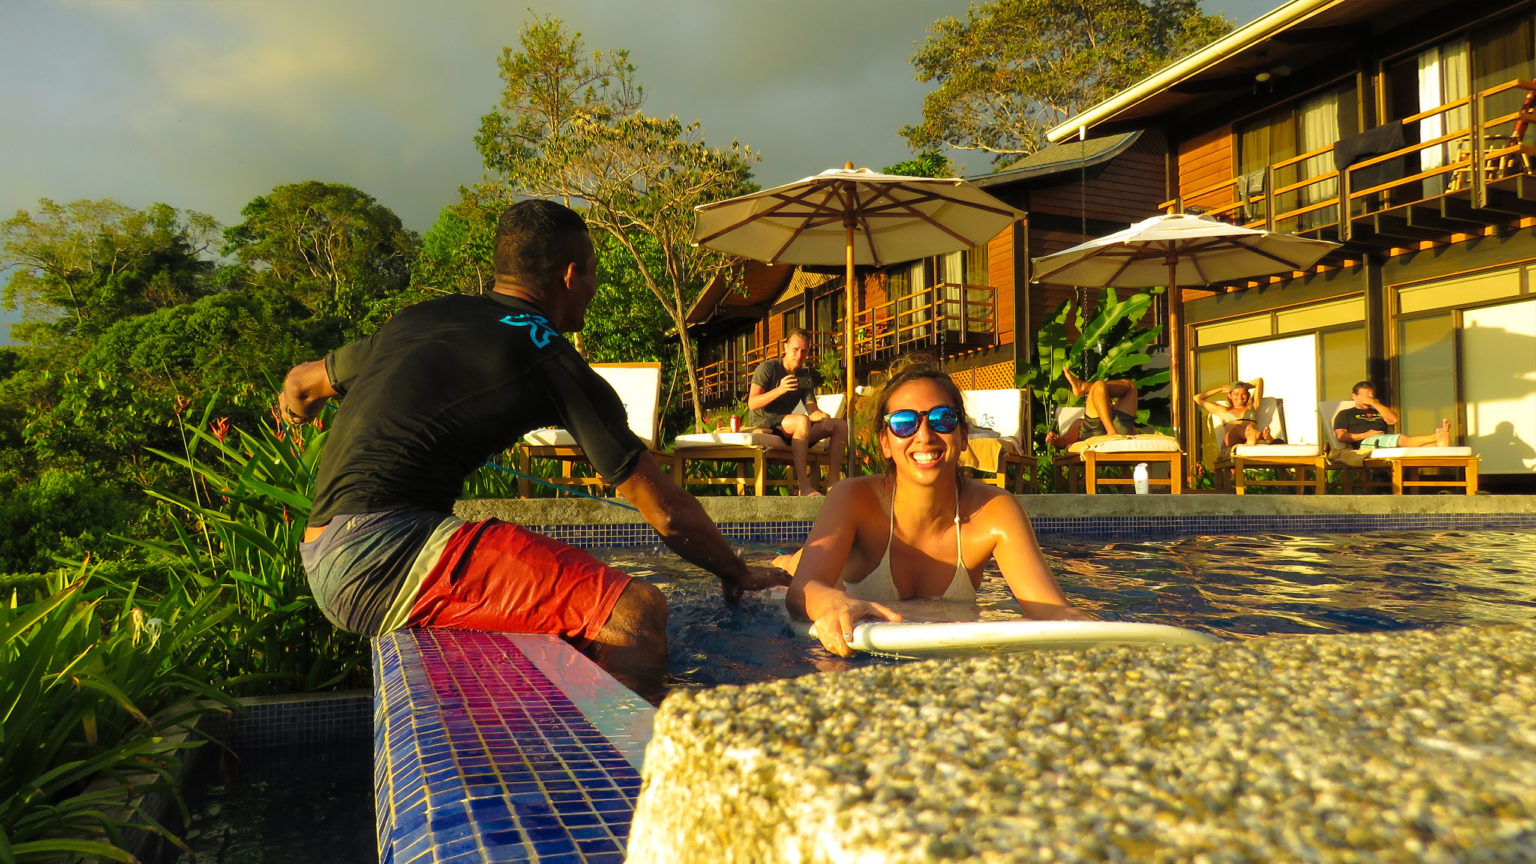 Learn surfing basics and paddle for surfing in the comfort of the Kalon Surf Camp Costa Rica pool.